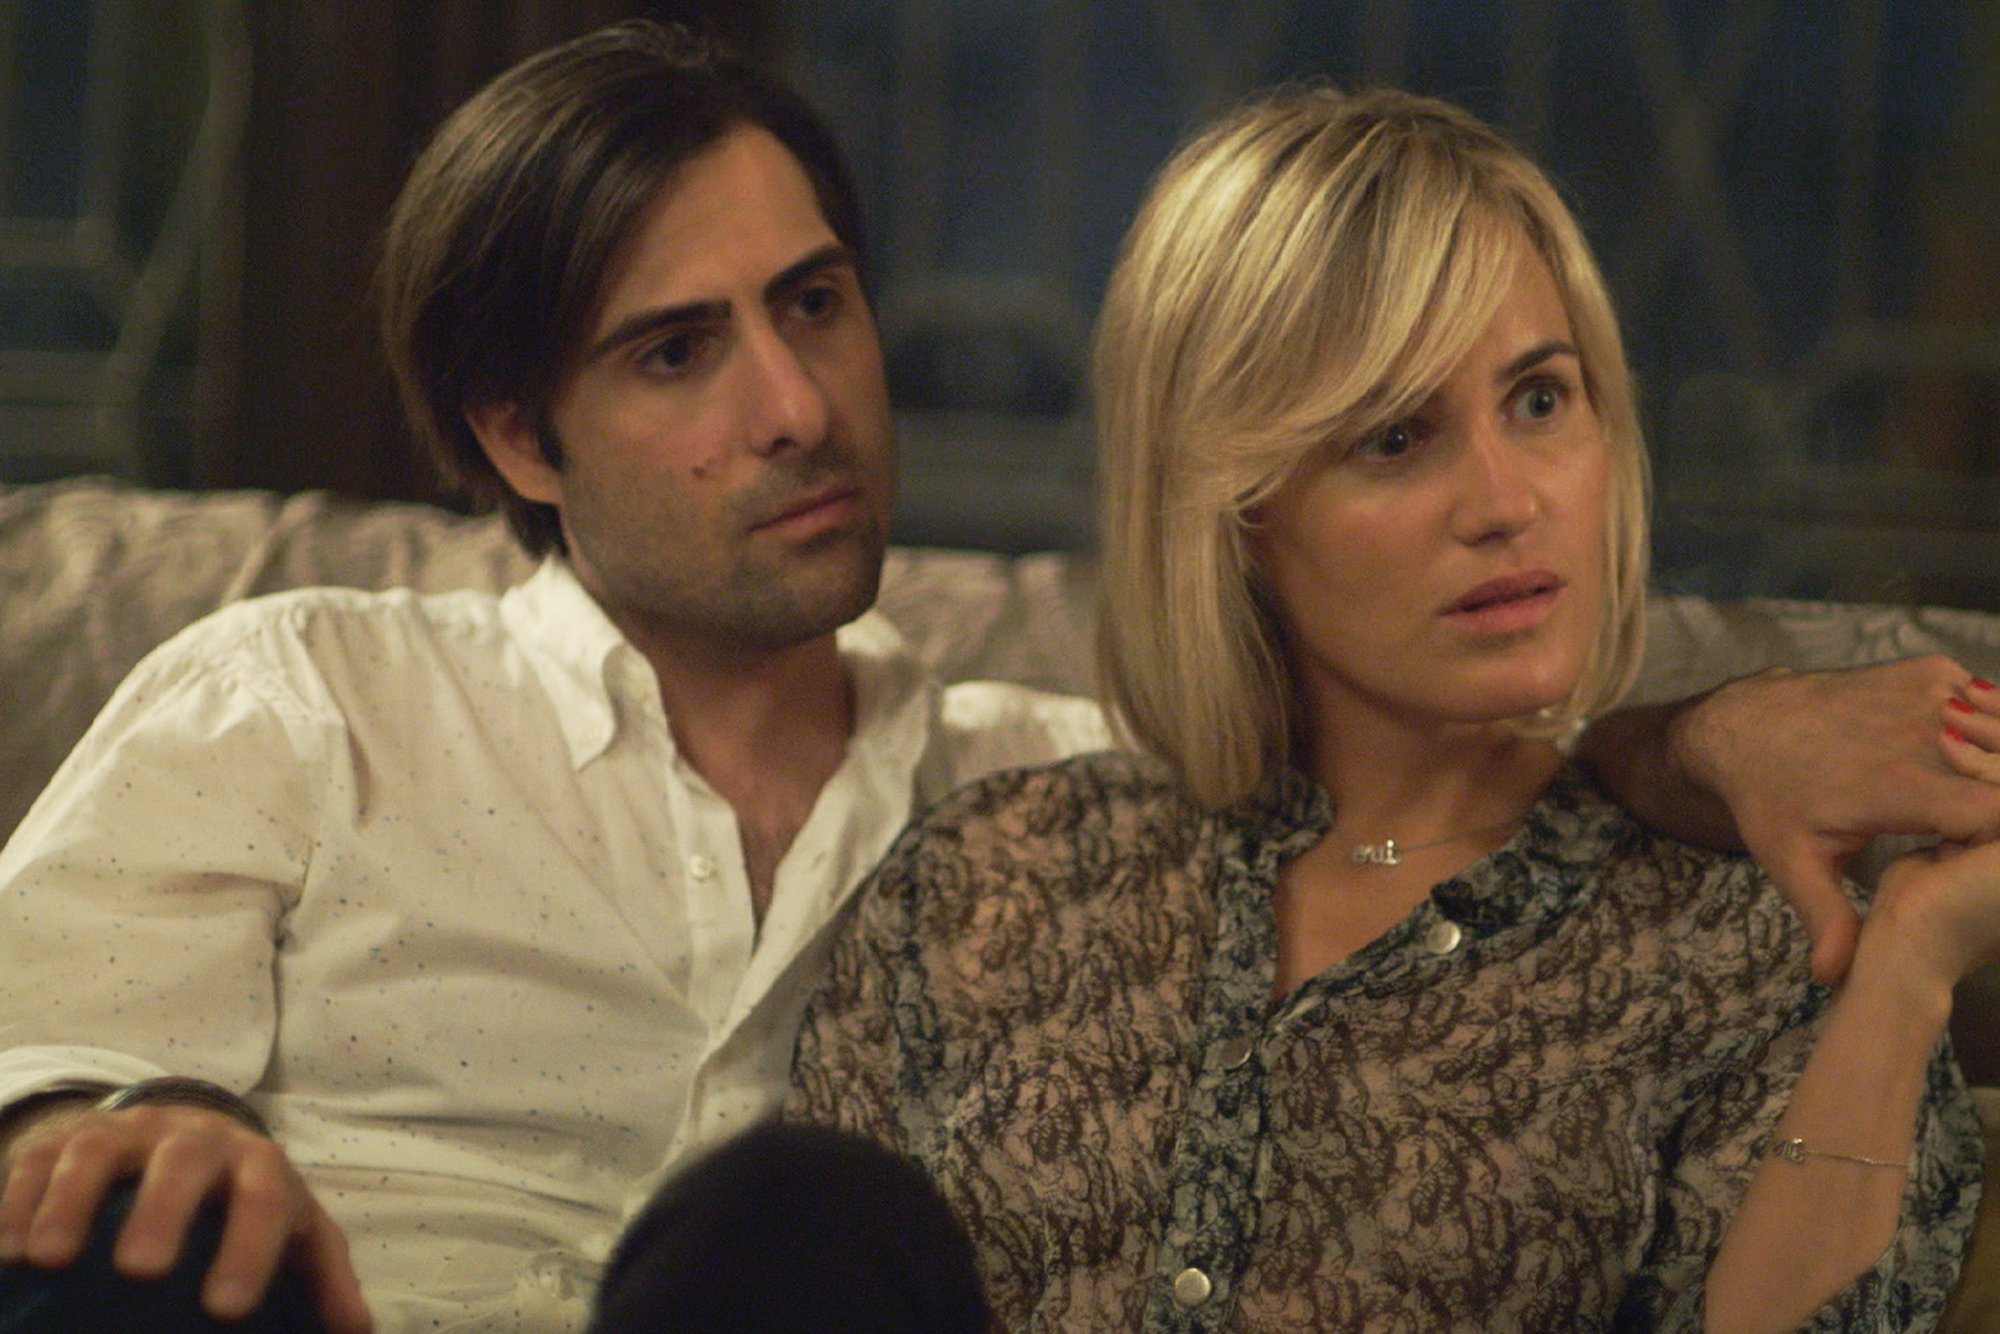 Tribeca Review: The Overnight and Man Up